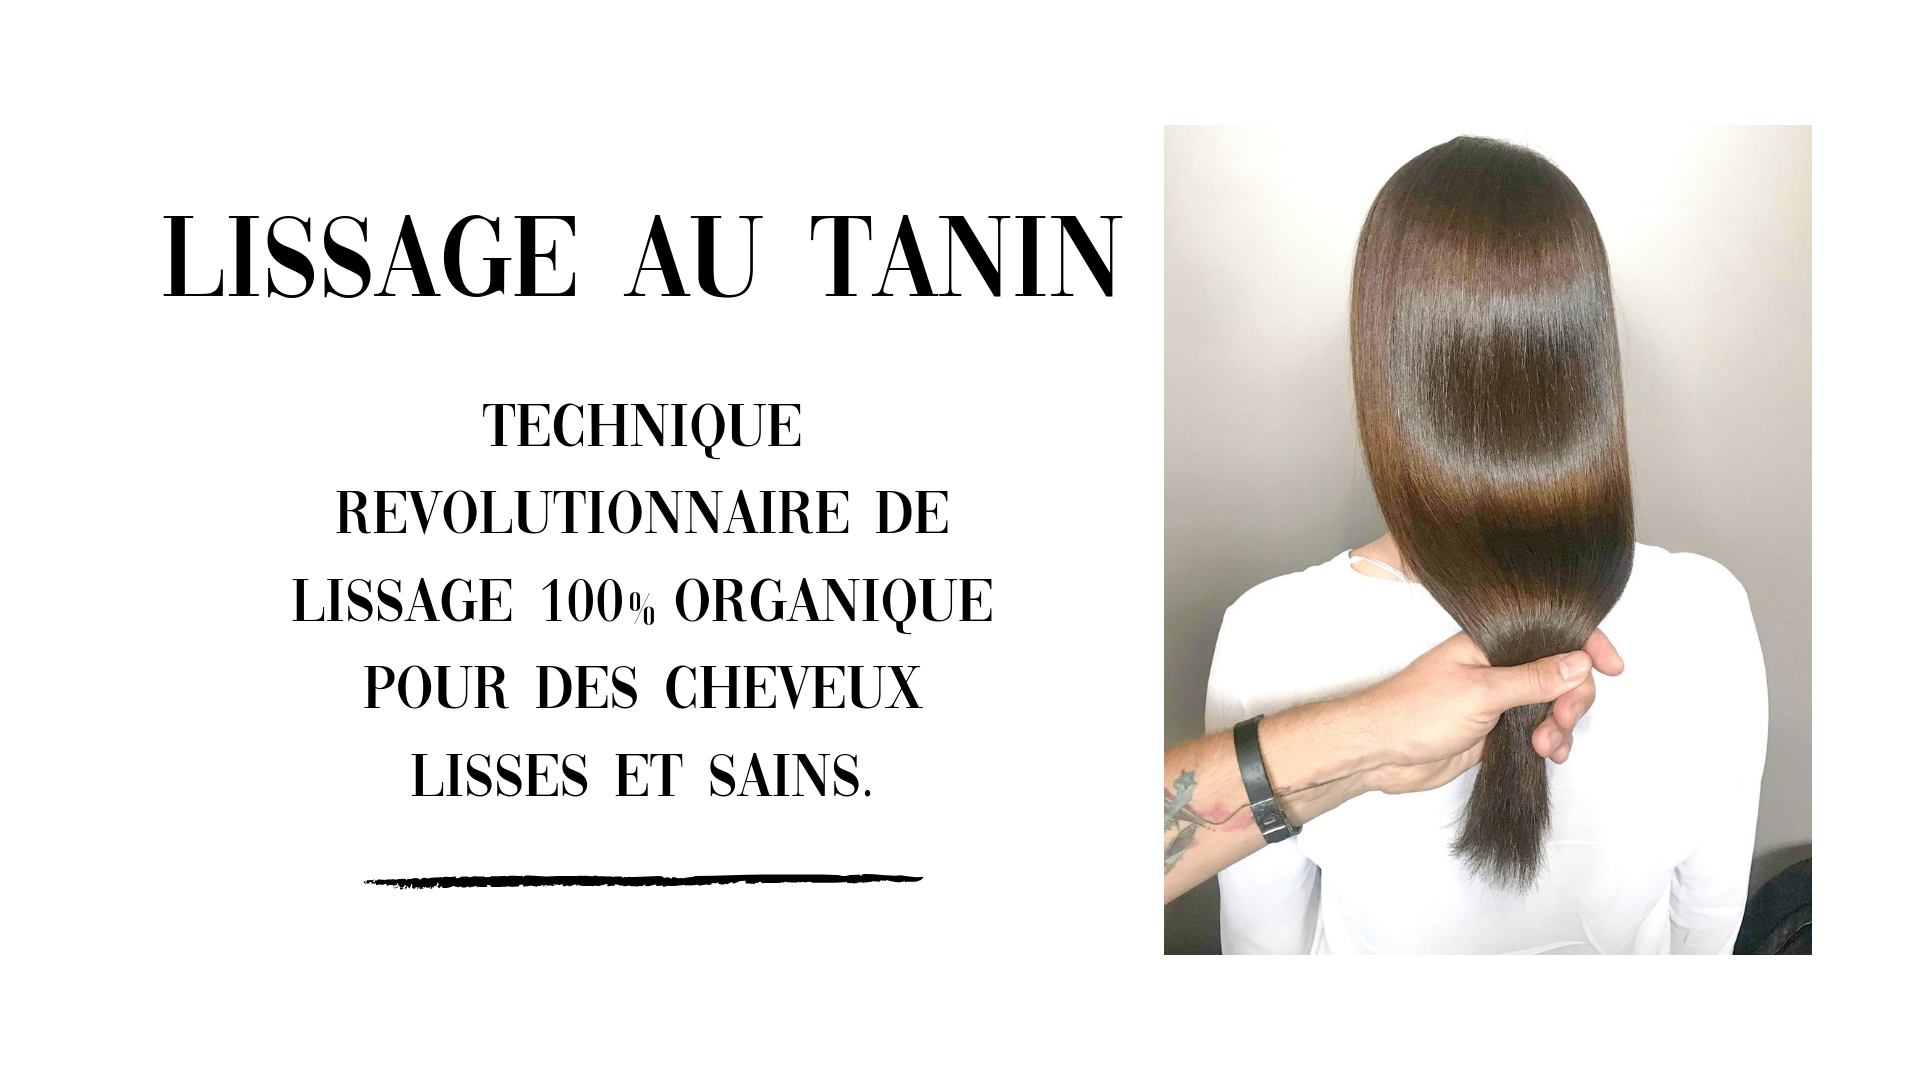 Lissage Au Tanin Botox Capillaire Ferber Hair Style Hairdresser In Luxembourg Coiffeur A Letzebuerg Coiffure Friseur Hairstylist